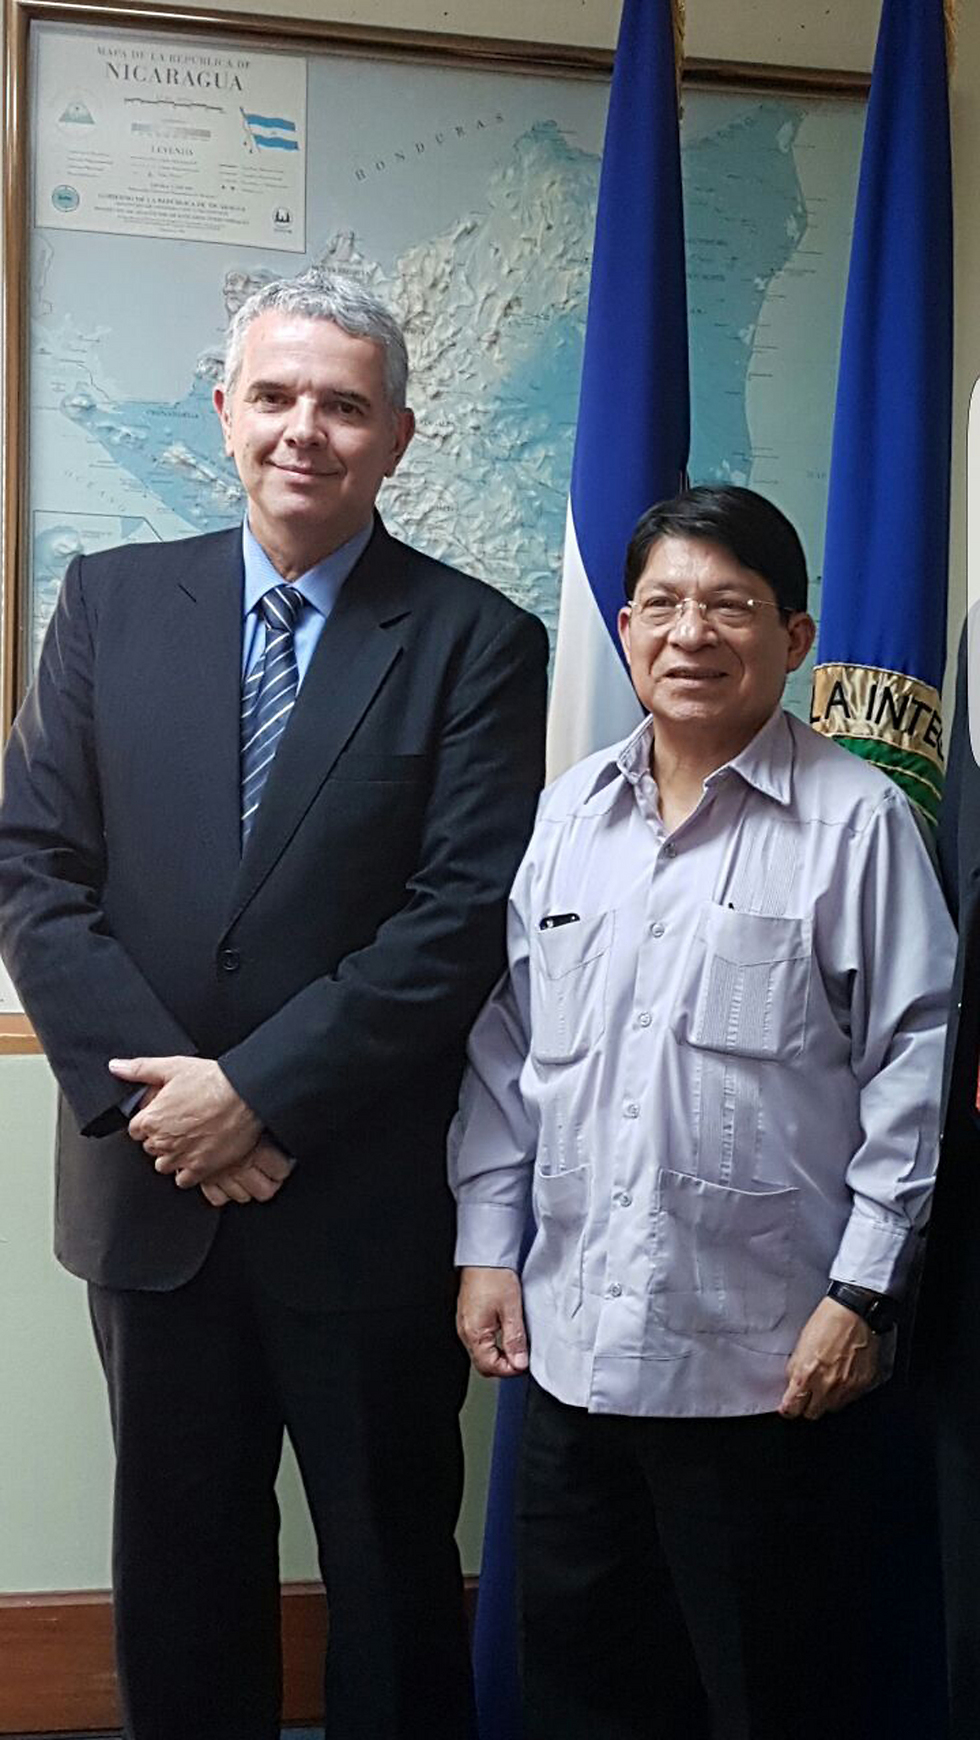 L to R: Deputy Director General of the Foreign Ministry's Division for Central and South America Modi Efraim with Nicaragua's Foreign Minister Denis Moncada